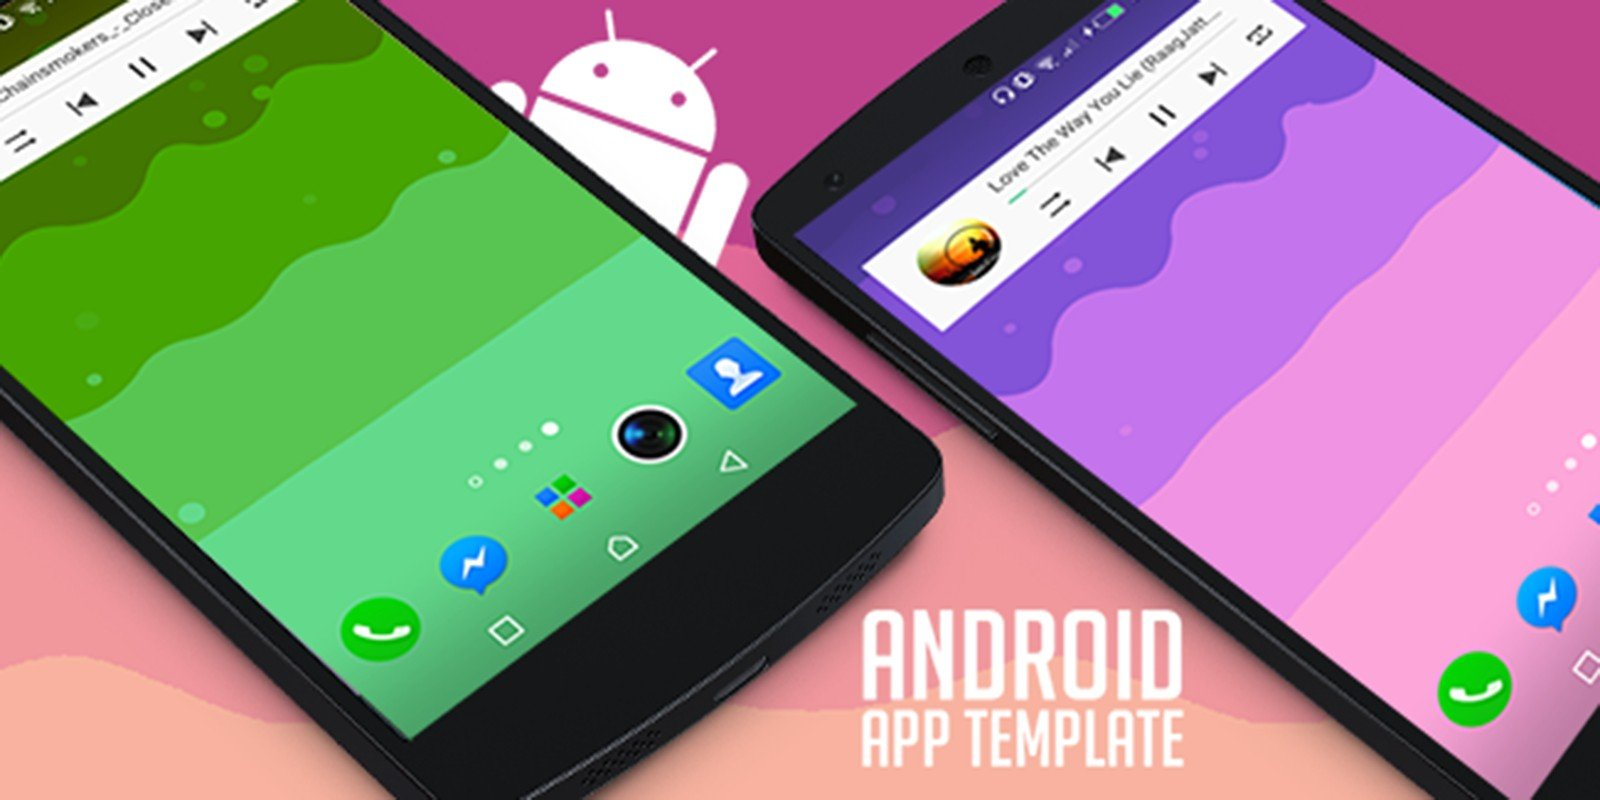 Wavie - Music Live Wallpaper Android Template